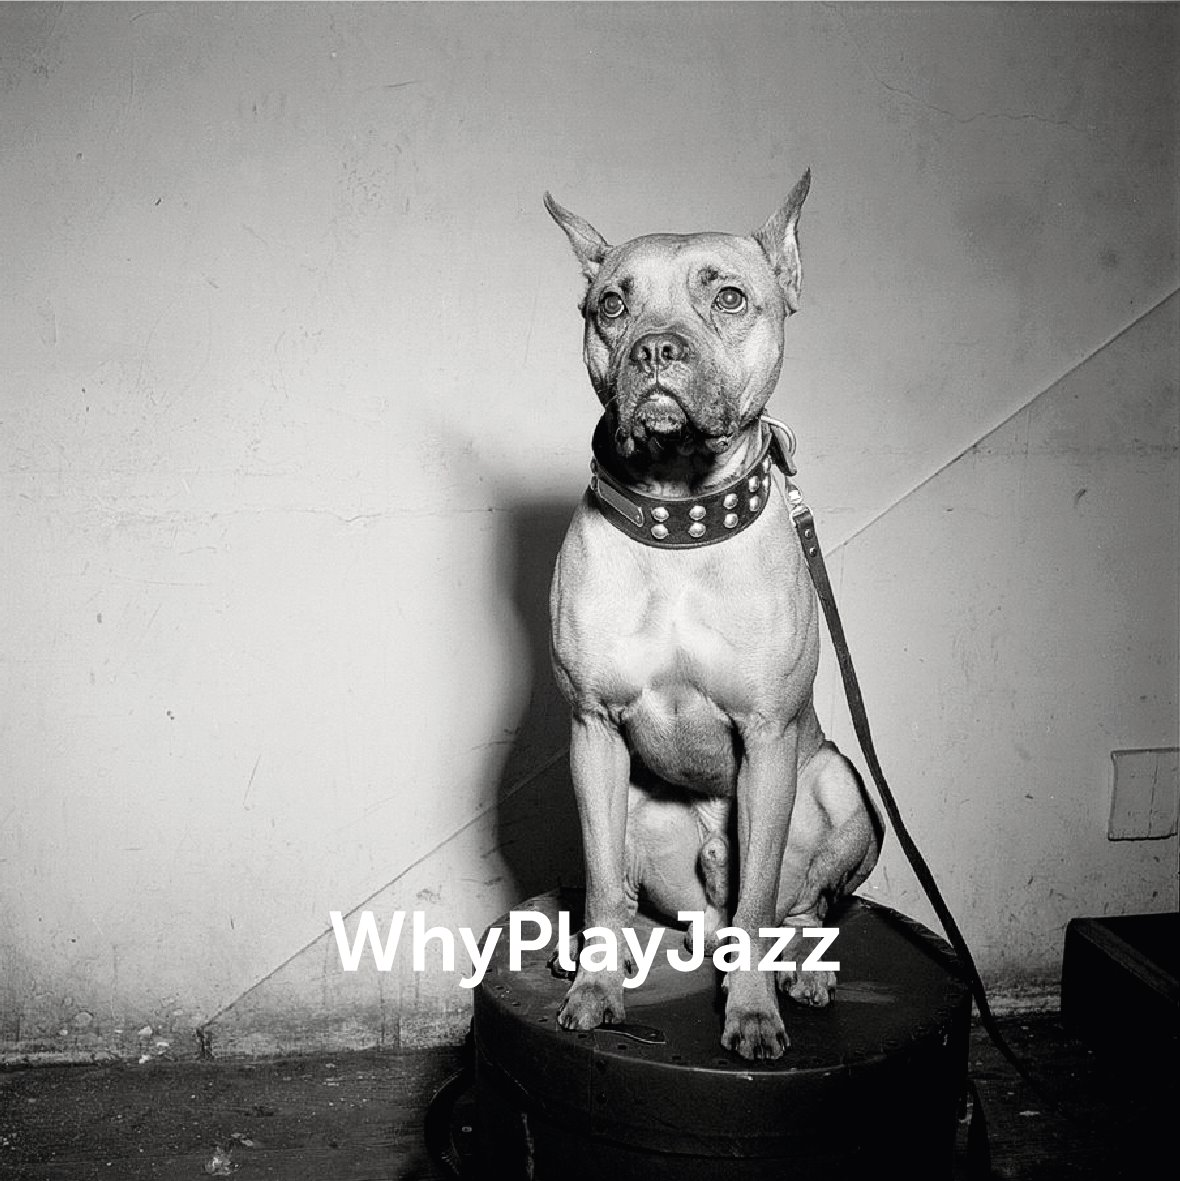 WhyPlayJazz mascot posing for the camera.